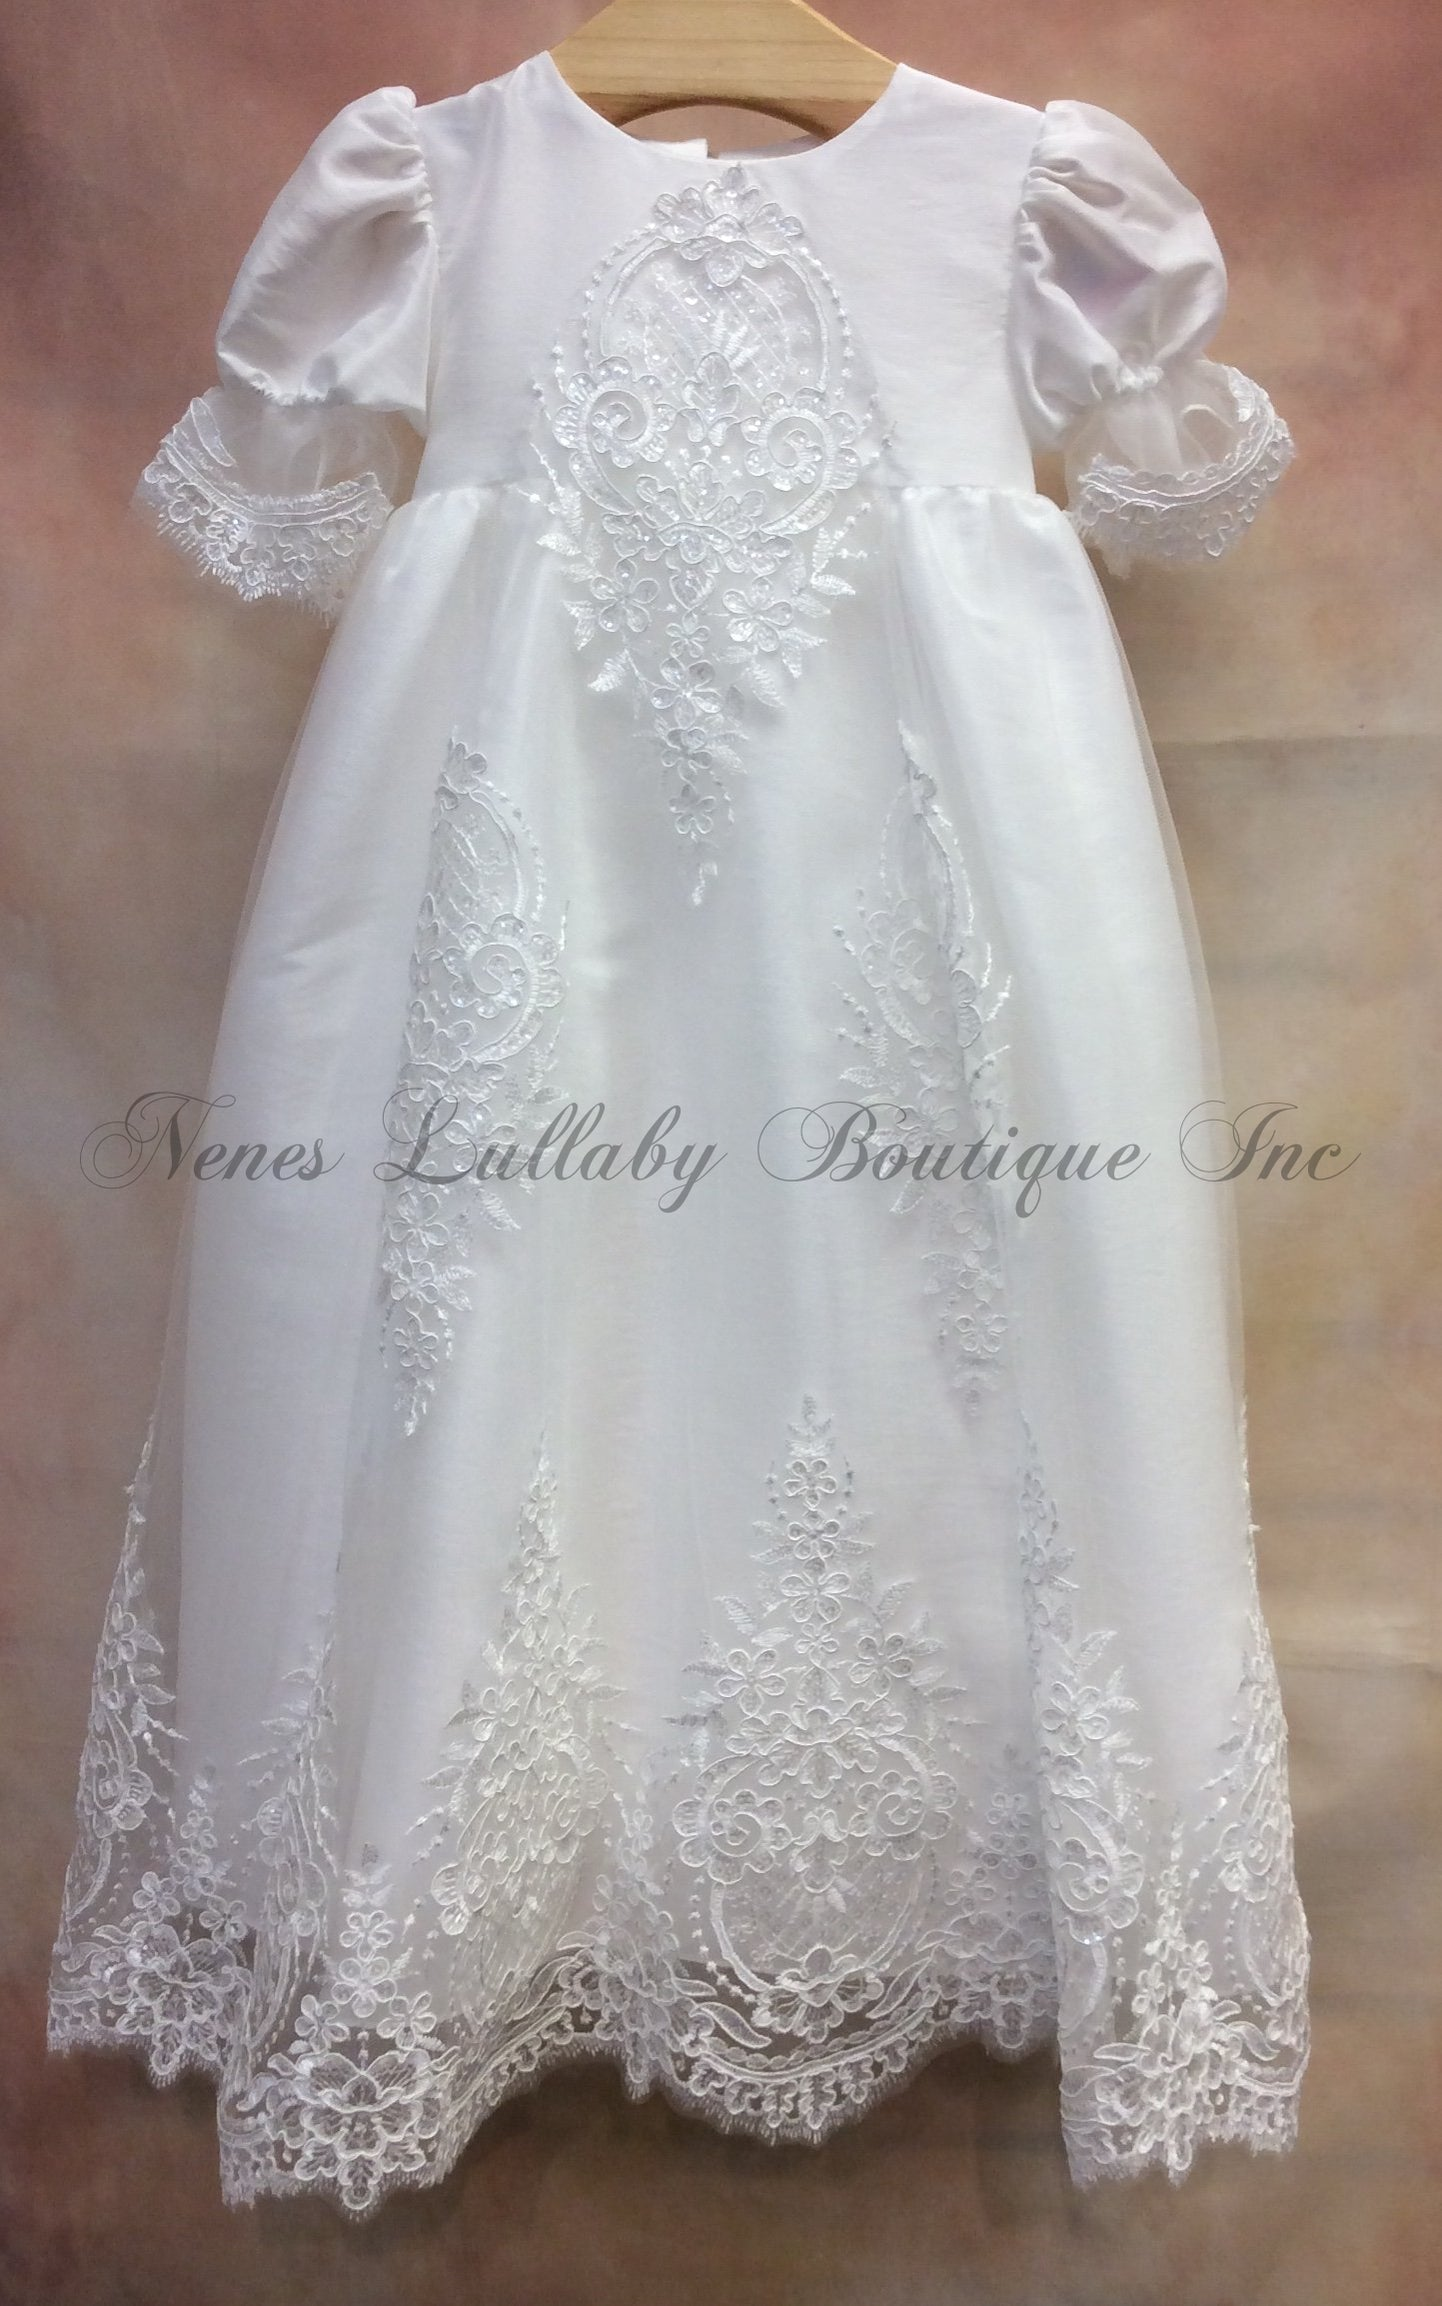 MDCH255DW Christening gown - Nenes Lullaby Boutique Inc